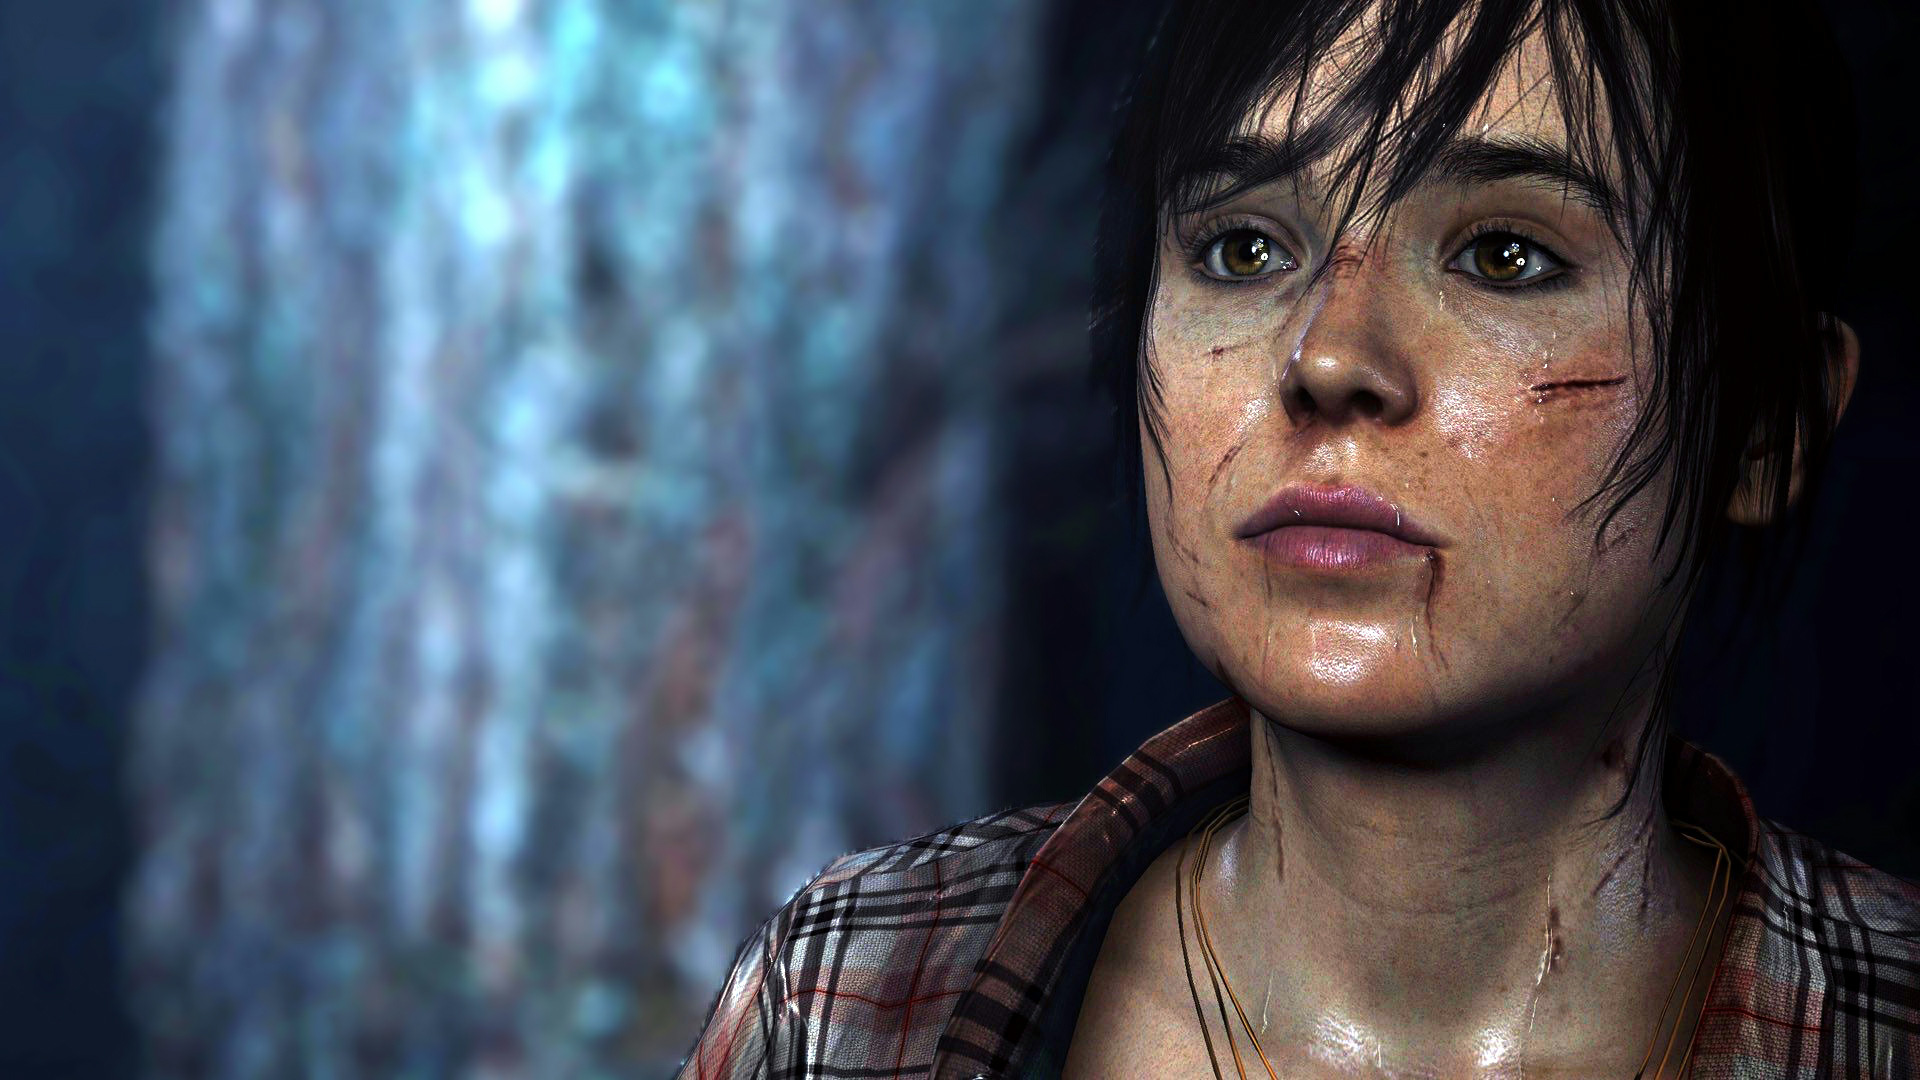 LagZero Analiza: Beyond Two Souls [1,2,3… he comes for you]